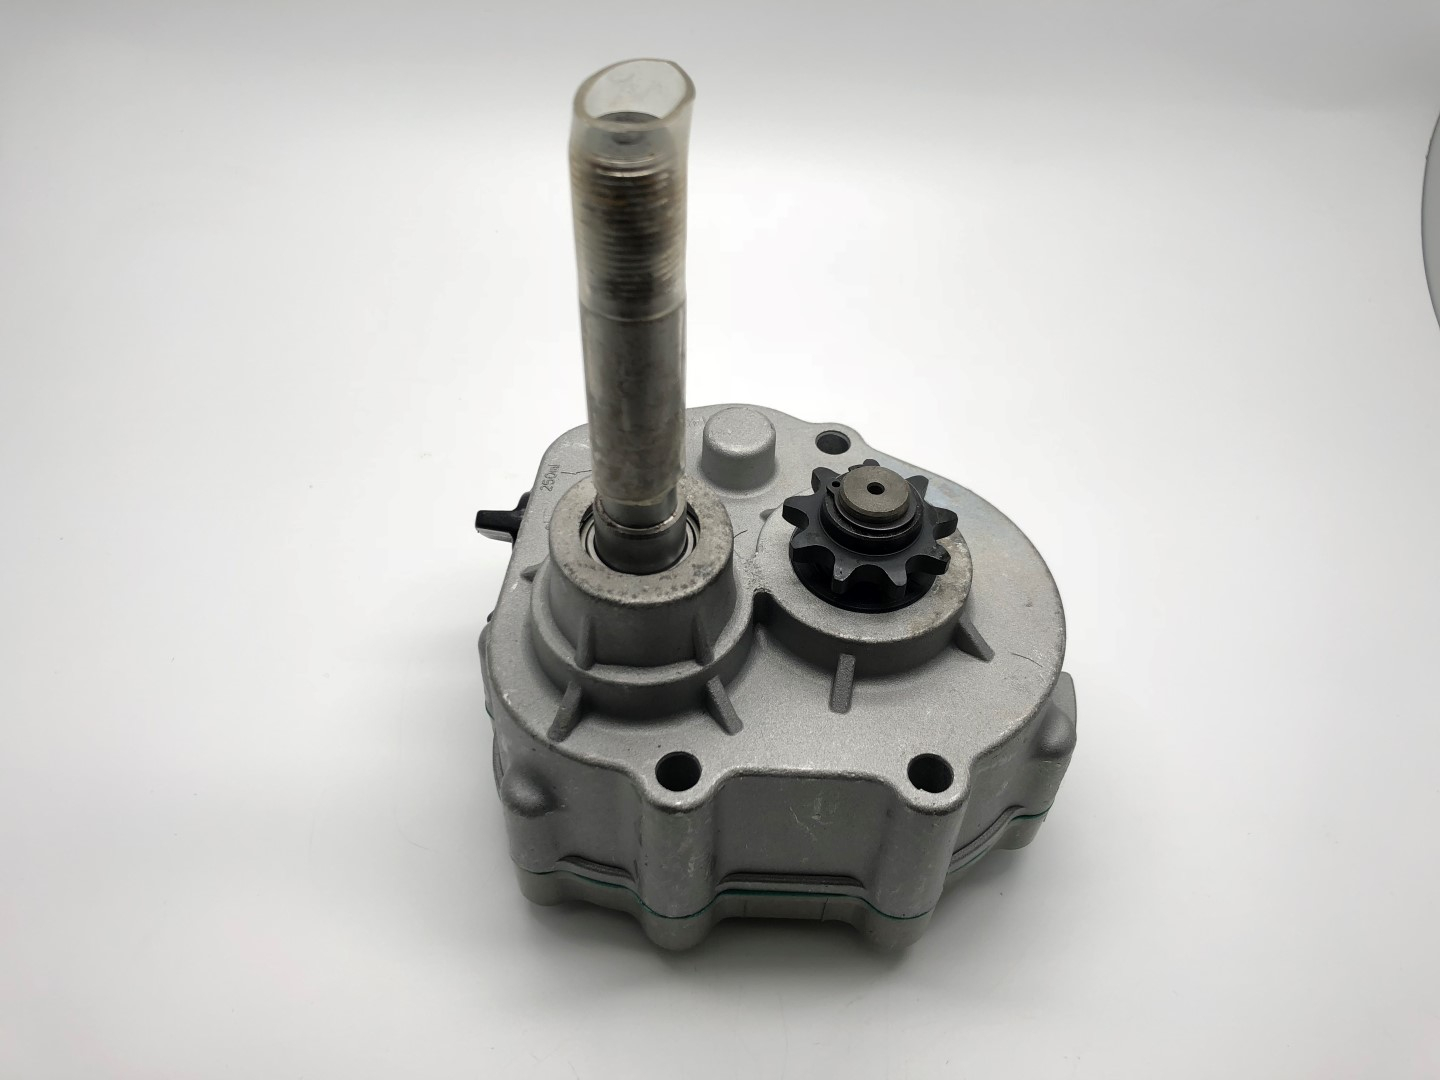 Mudhead 208R Complete Reverse Assembly